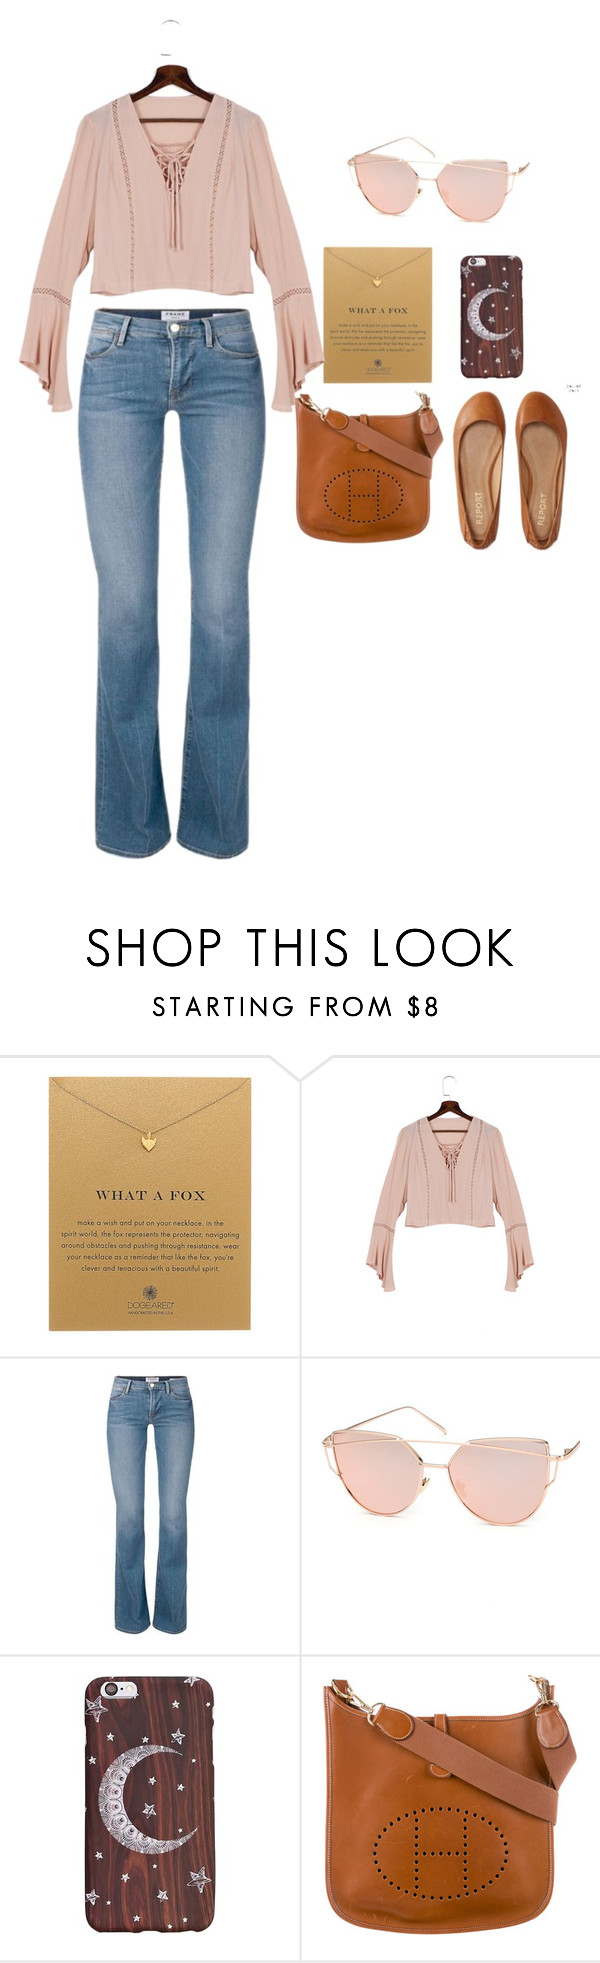 """""""Untitled #45"""" by elizzy1202 on Polyvore featuring Dogeared, Chicnova Fashion, Hermès and Aéropostale"""